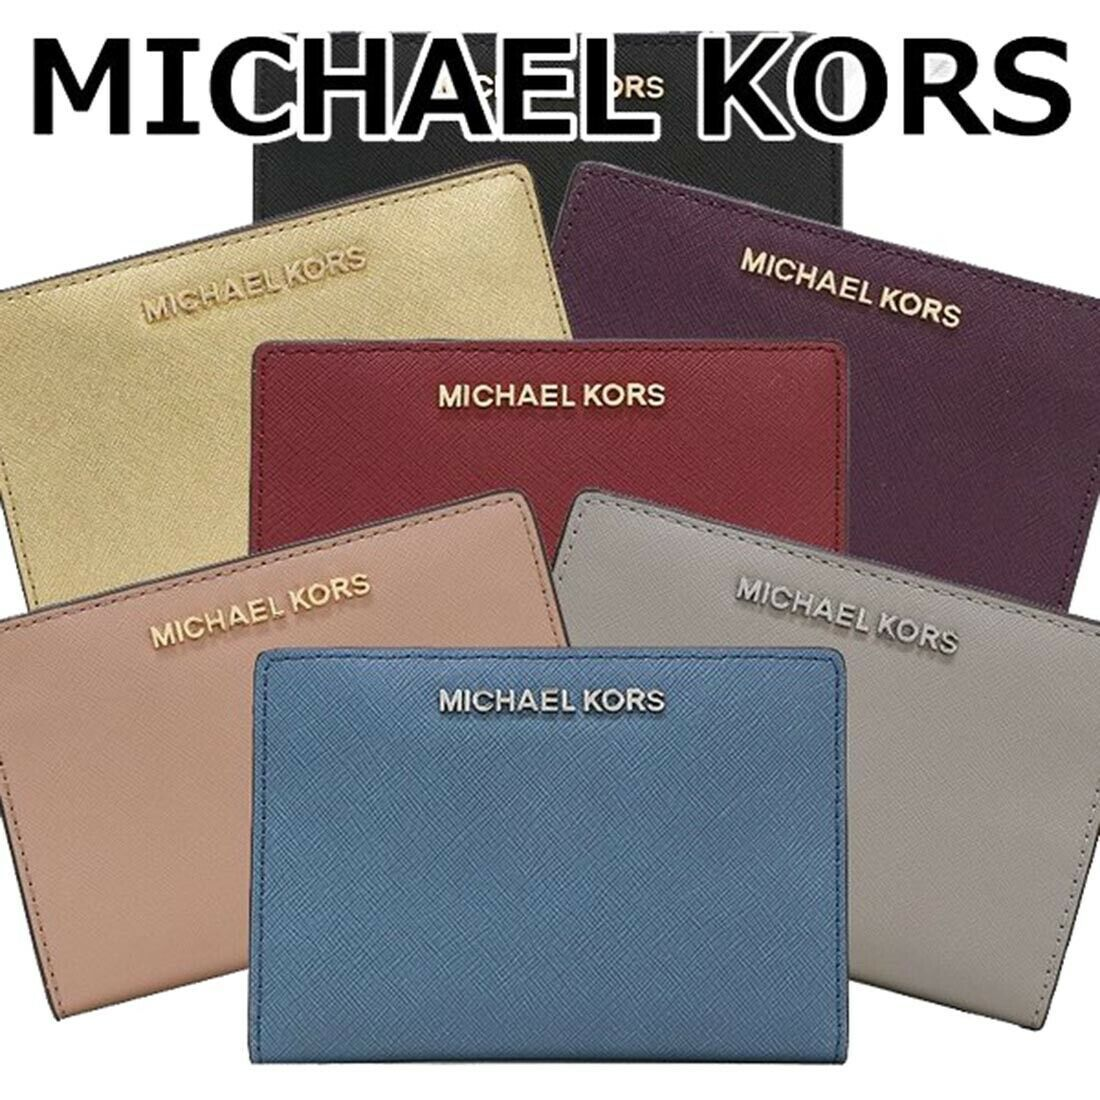 Primary image for NWT MICHAEL KORS Medium Carryall Wallet And Card Case Holder Pouch 35F8GTVD8L